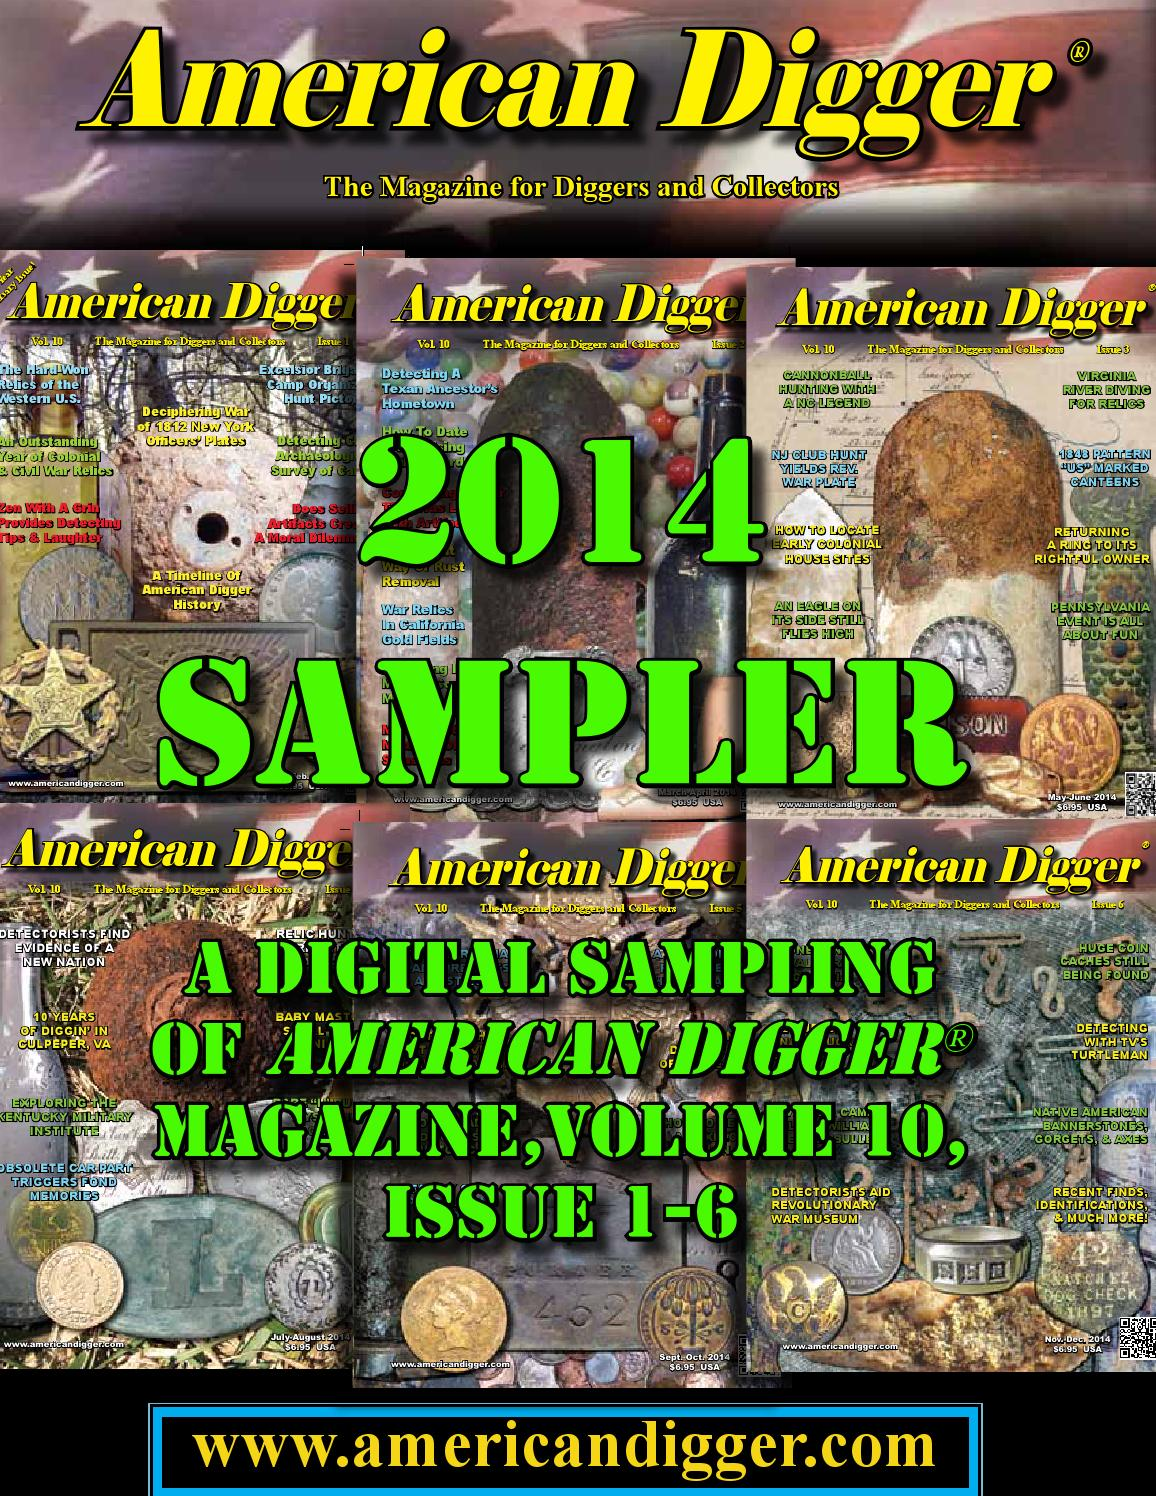 2014 american digger sampler by american digger magazine issuu kristyandbryce Image collections